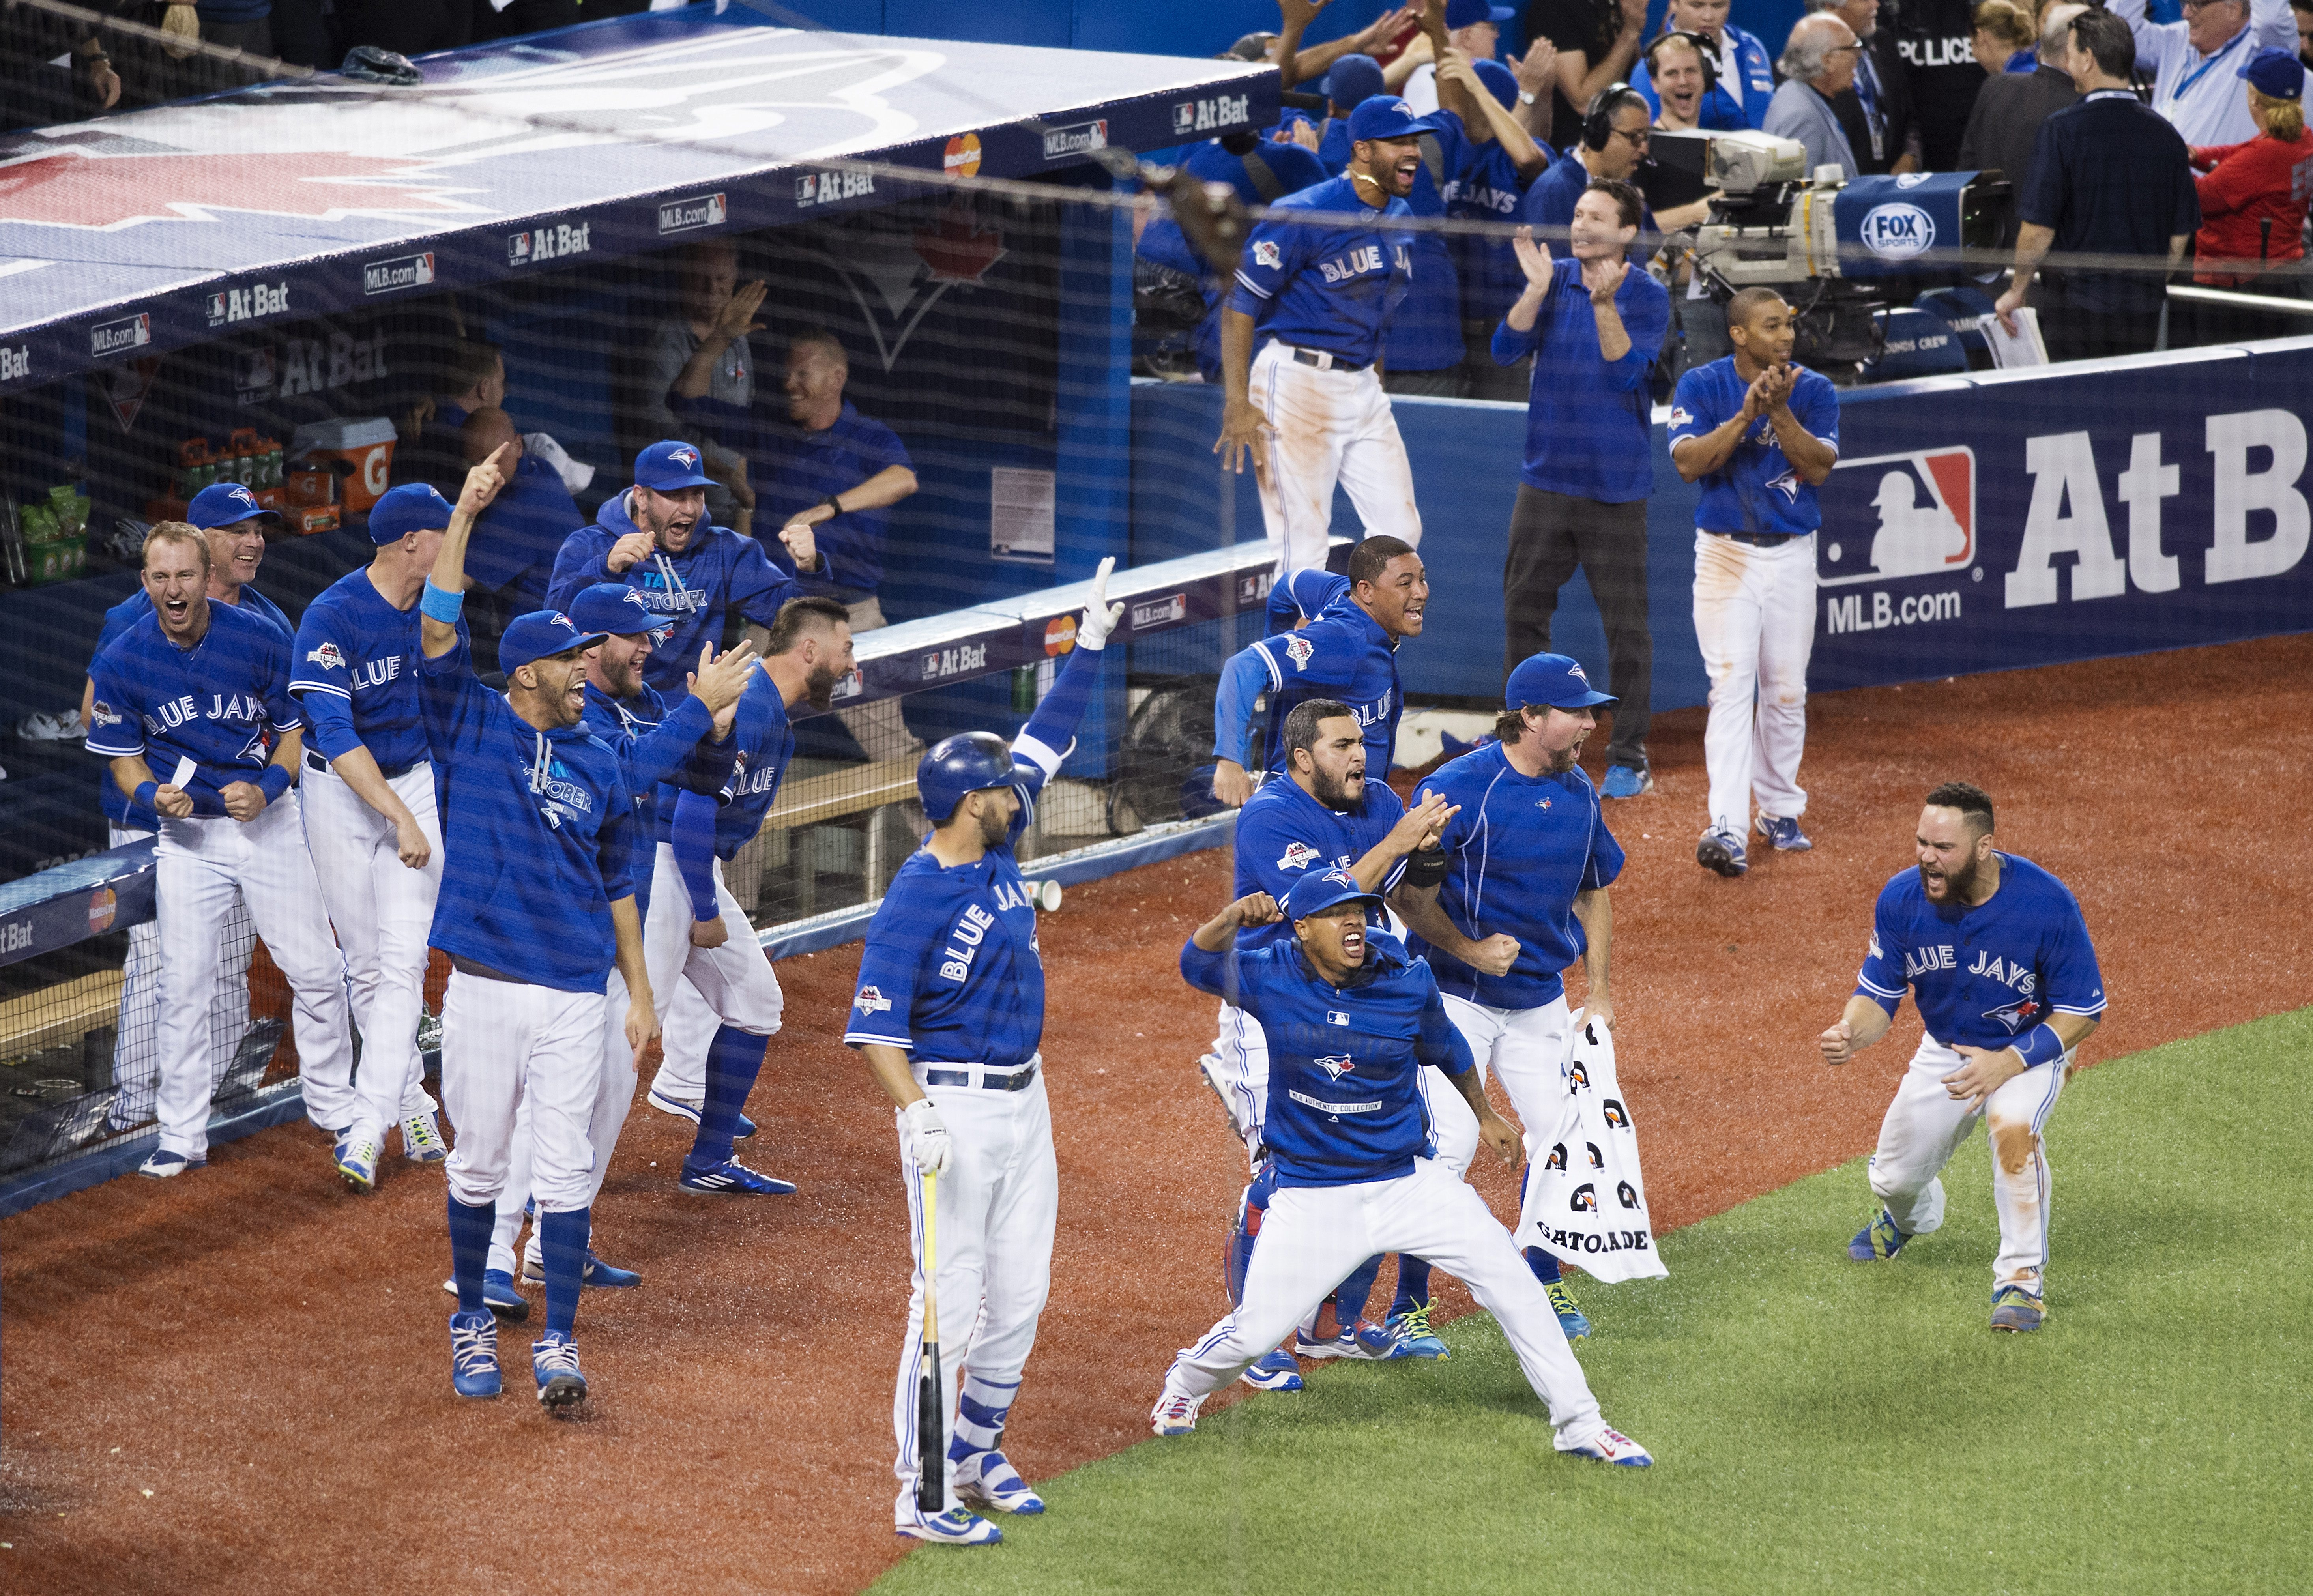 Members of the Toronto Blue Jays celebrate following a three-run home run by teammate Jose Bautista during the seventh inning in Game 5 of baseball's American League Division Series, Wednesday, Oct. 14, 2015 in Toronto. (Darren Calabrese/The Canadian Pres